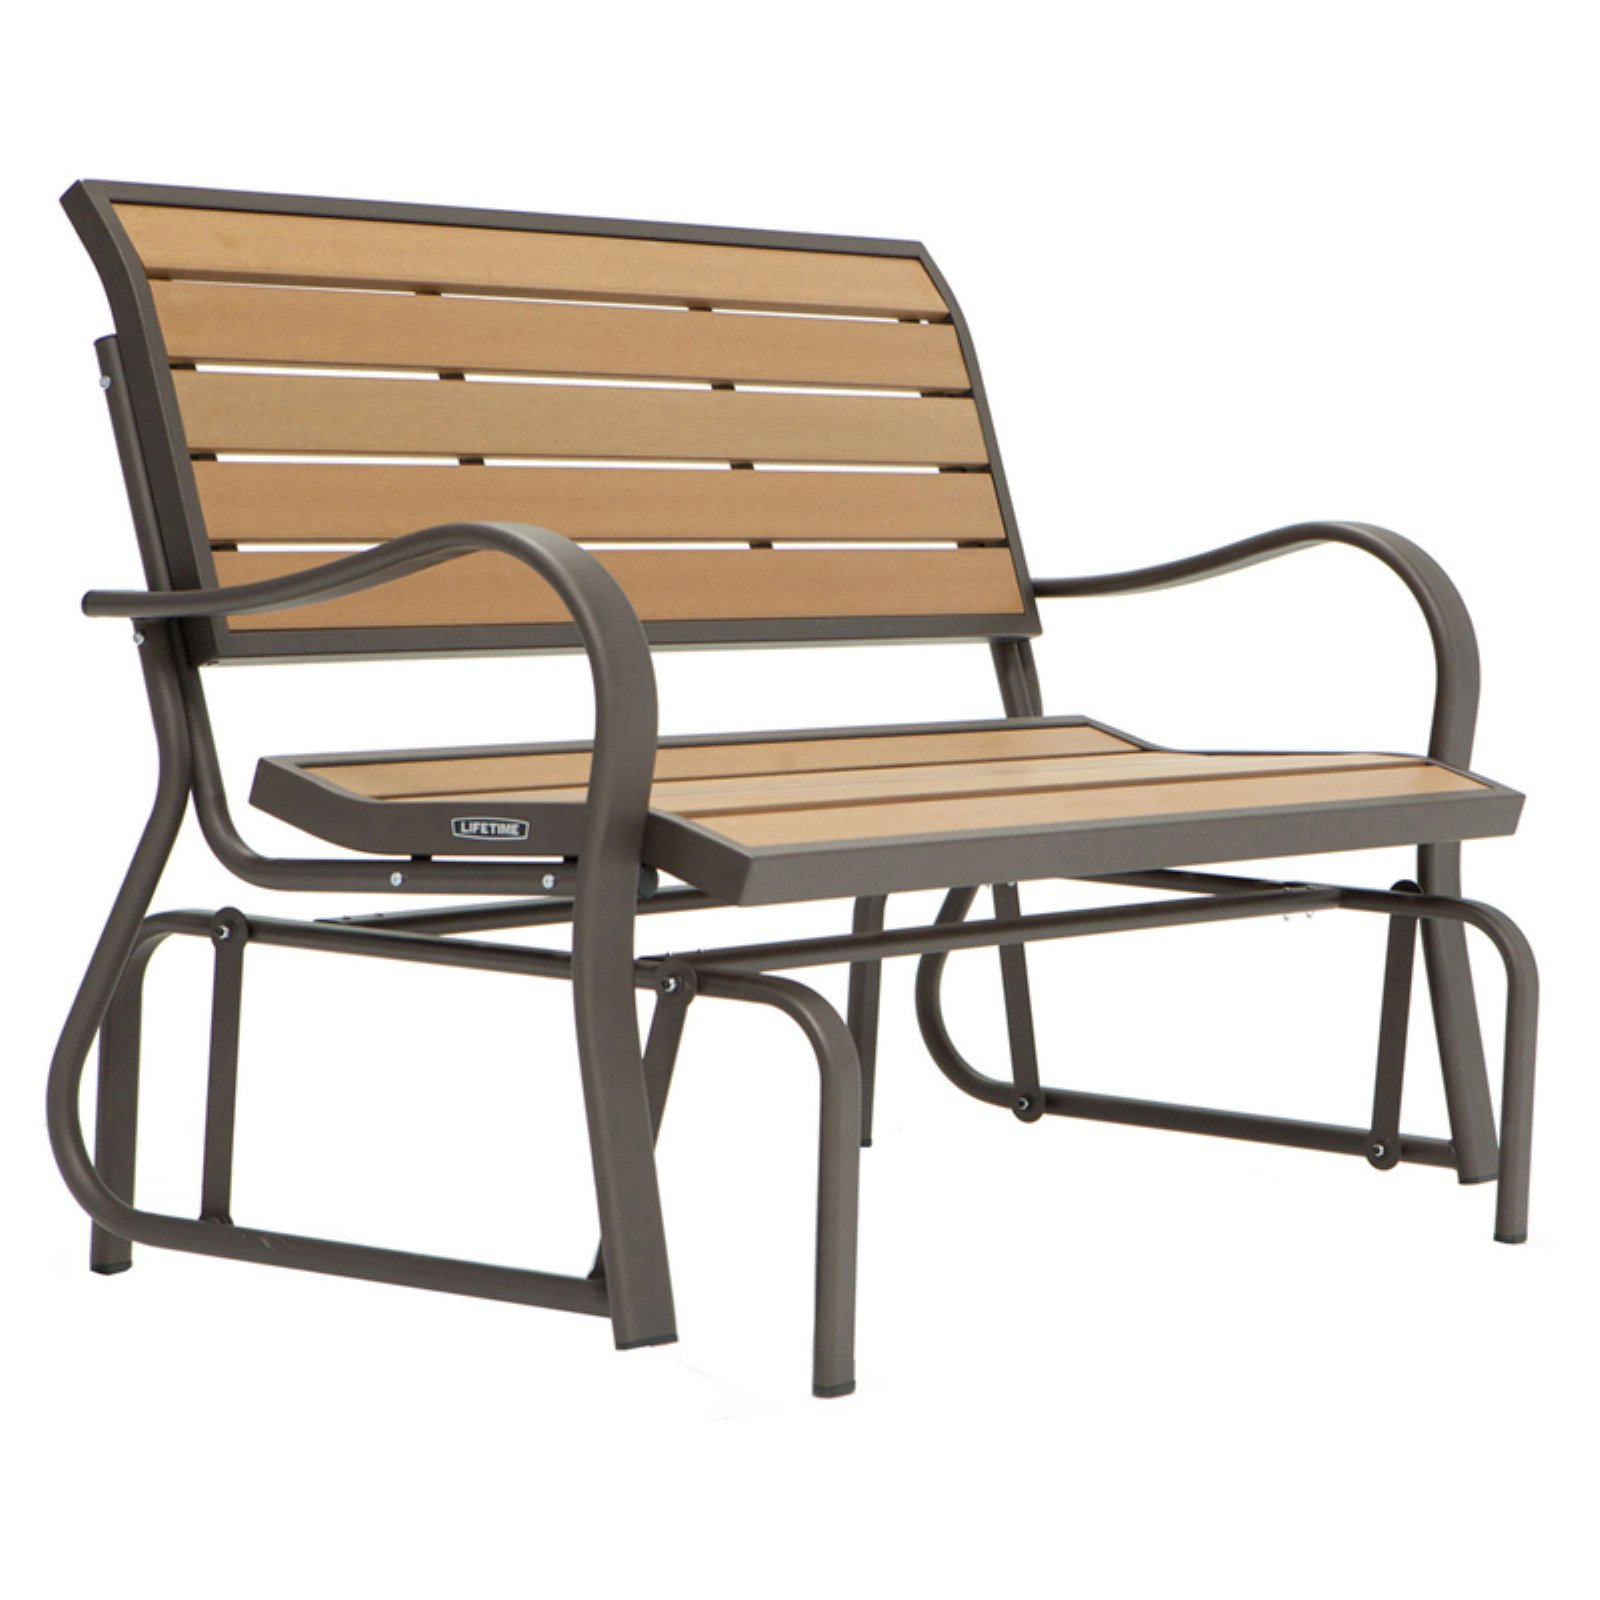 Lifetime Wood Alternative Glider Bench, 60055